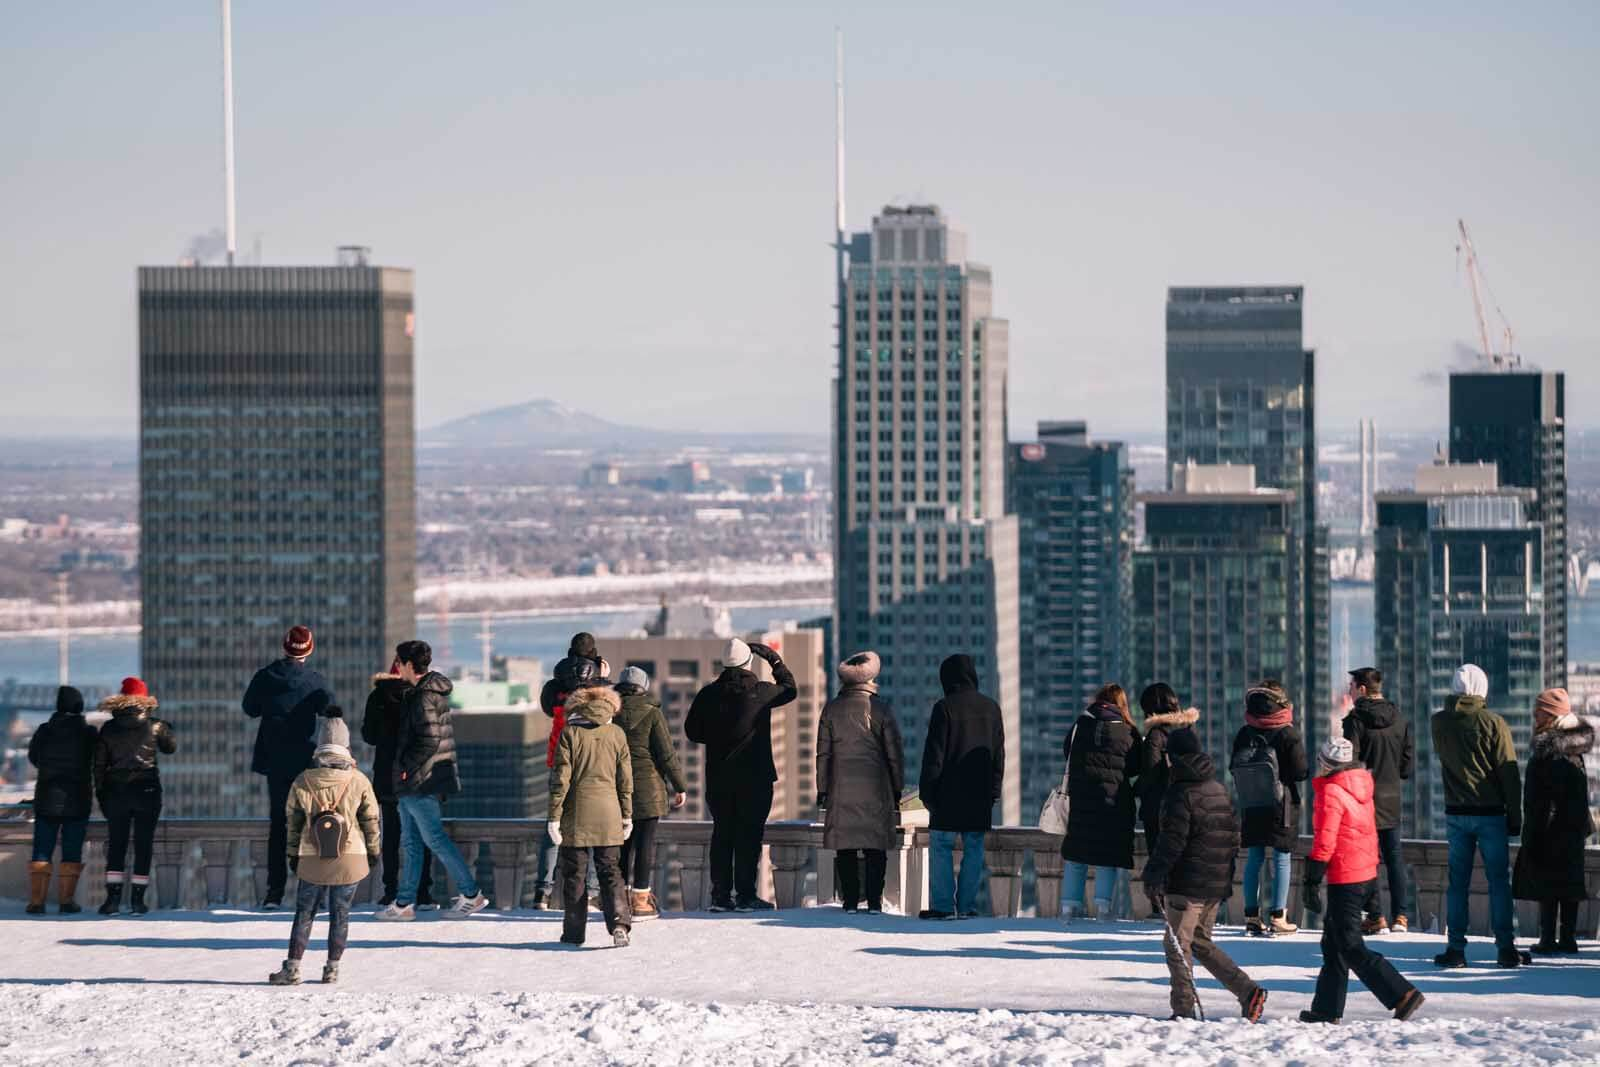 People enjoying the view at Mont Royal of Montreal below